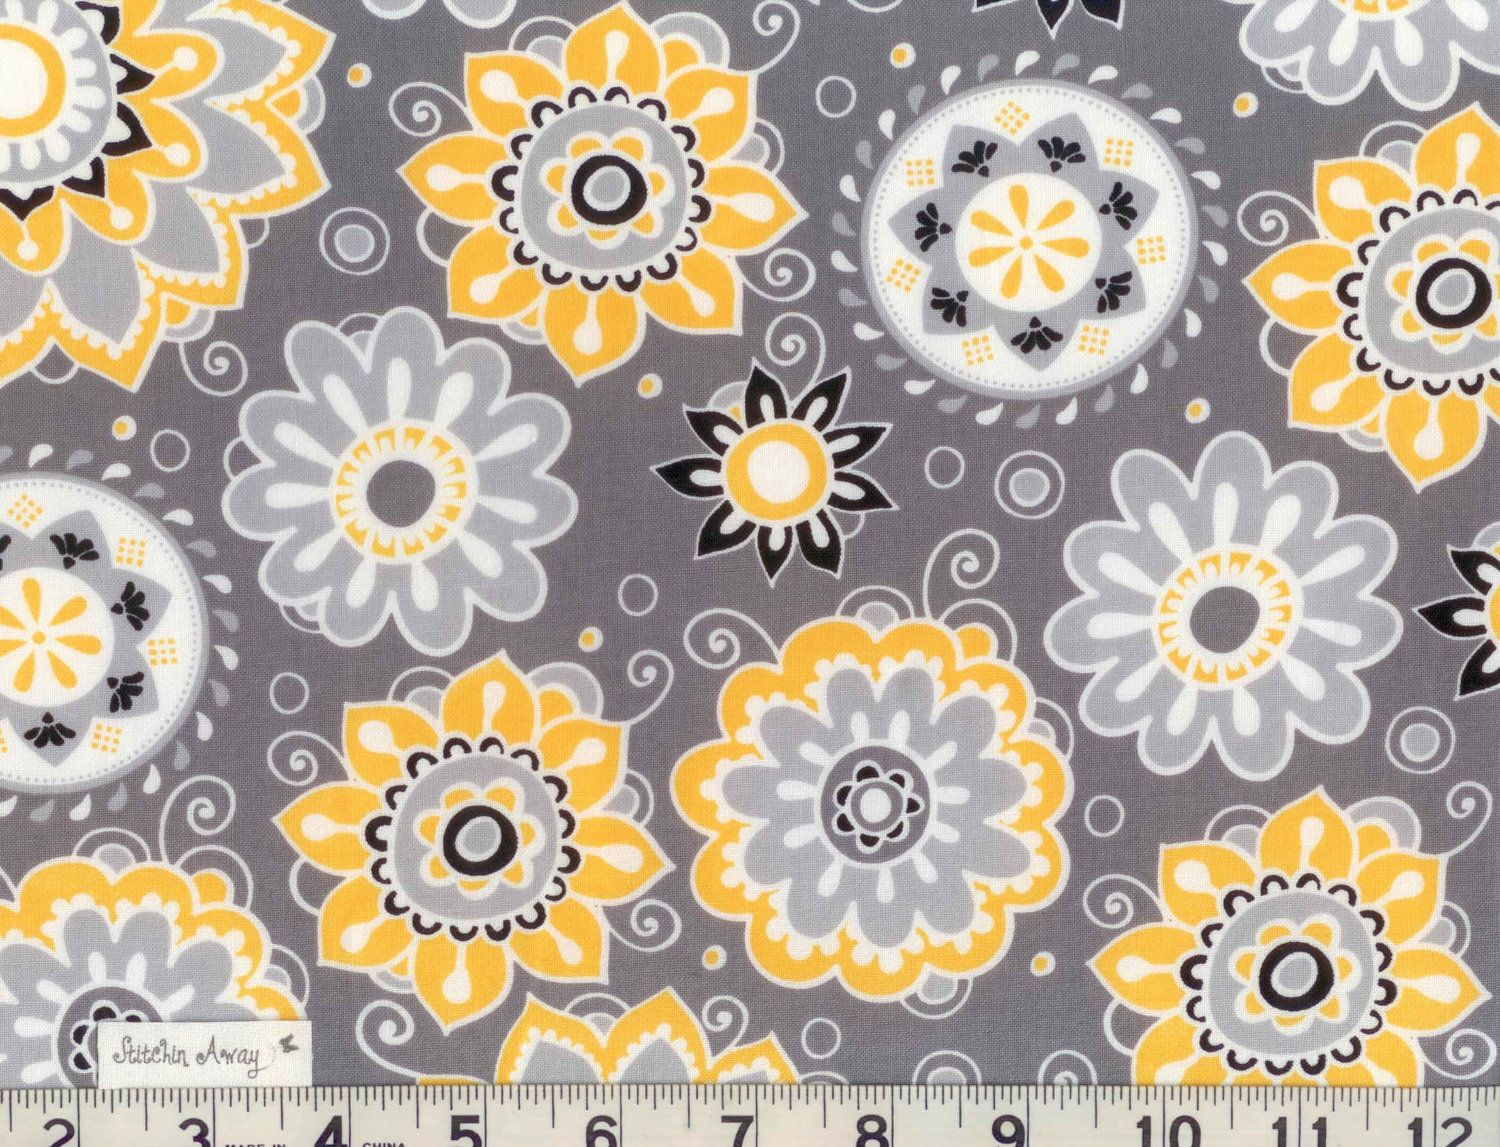 YELLOW, WHITE and BLACK, and Gray Floral Fabric New 100% Cotton ...